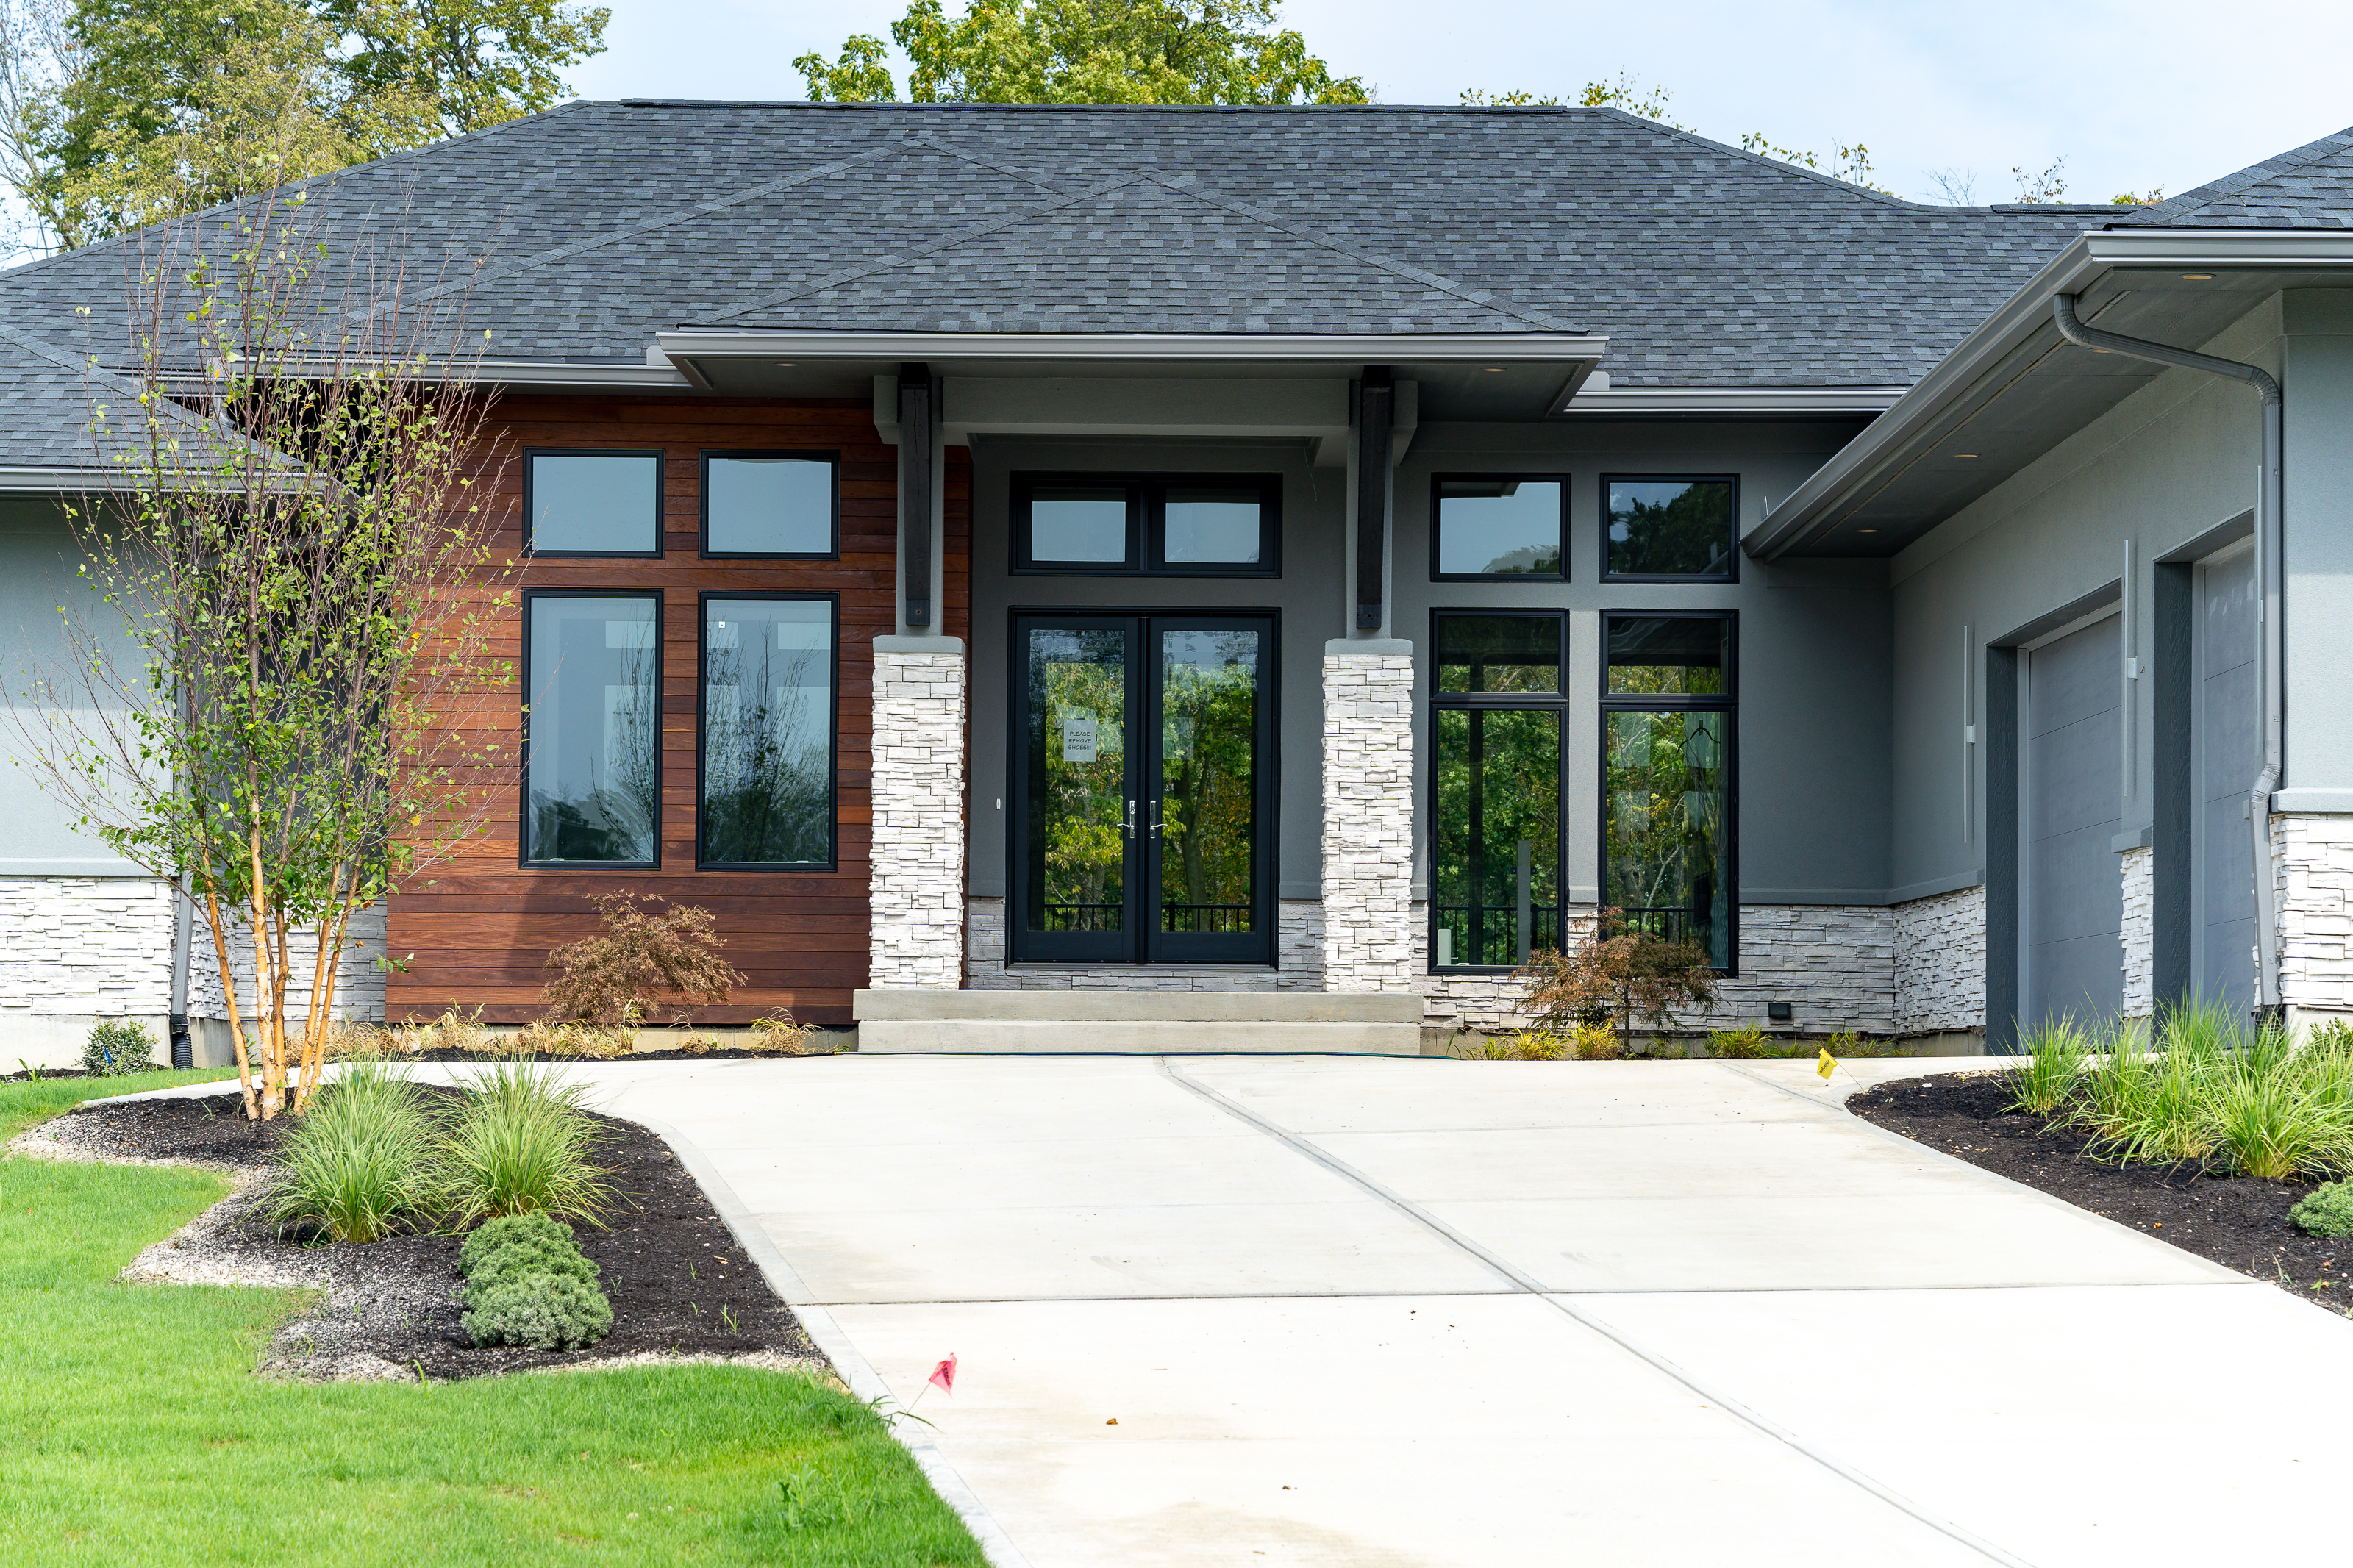 Vita Modern Homes' Renan model reflects a West Coast style with contemporary,  forward-thinking designs | Jeff Louderback